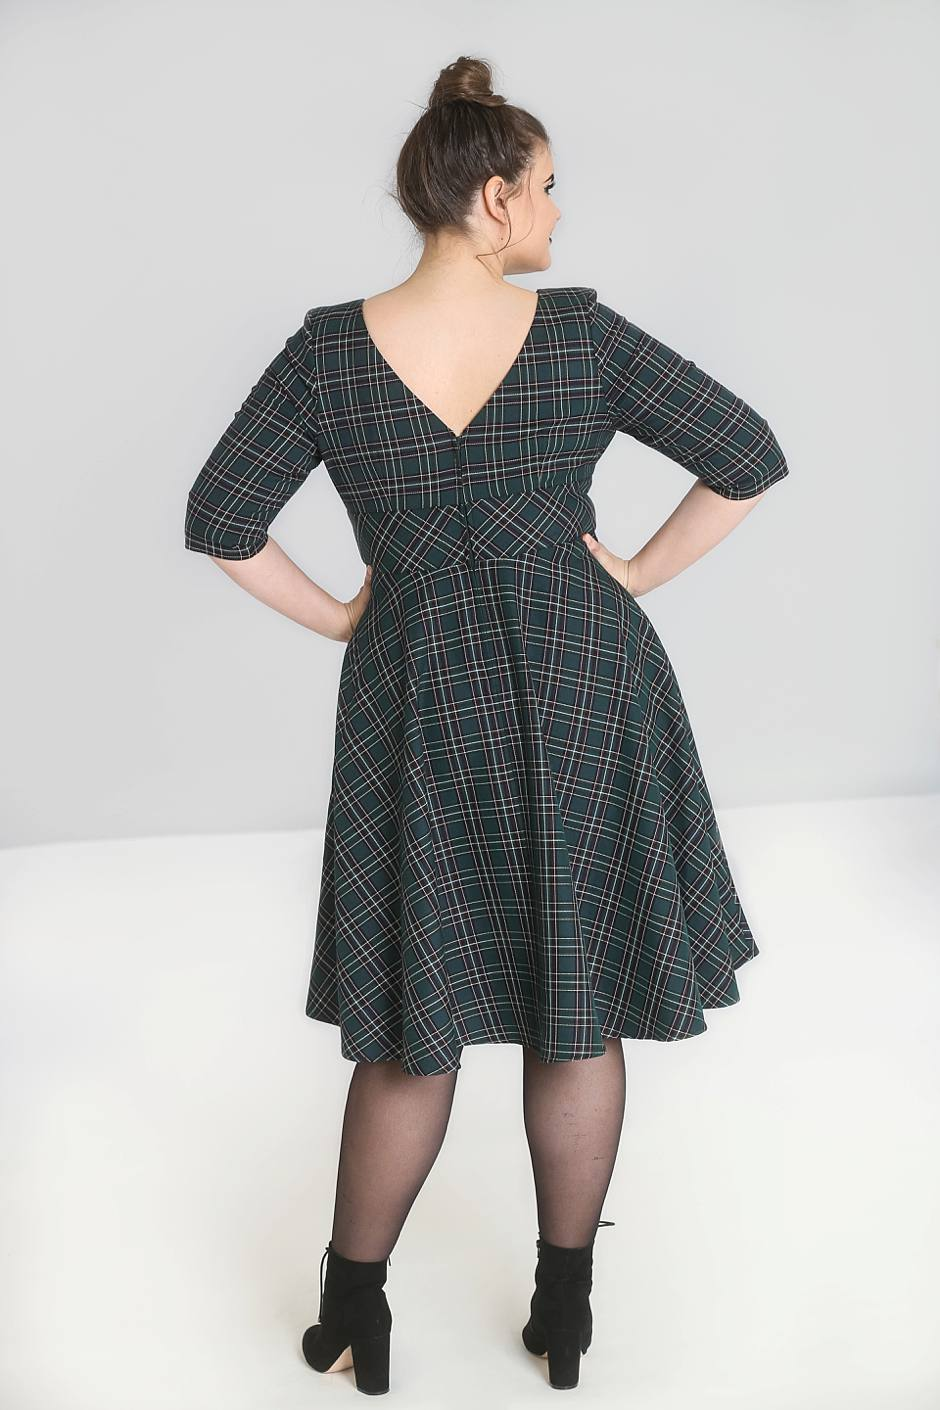 a5ffe3c559159 Plus Size Vintage, Alternative and Rockabilly Clothing | Hell Bunny